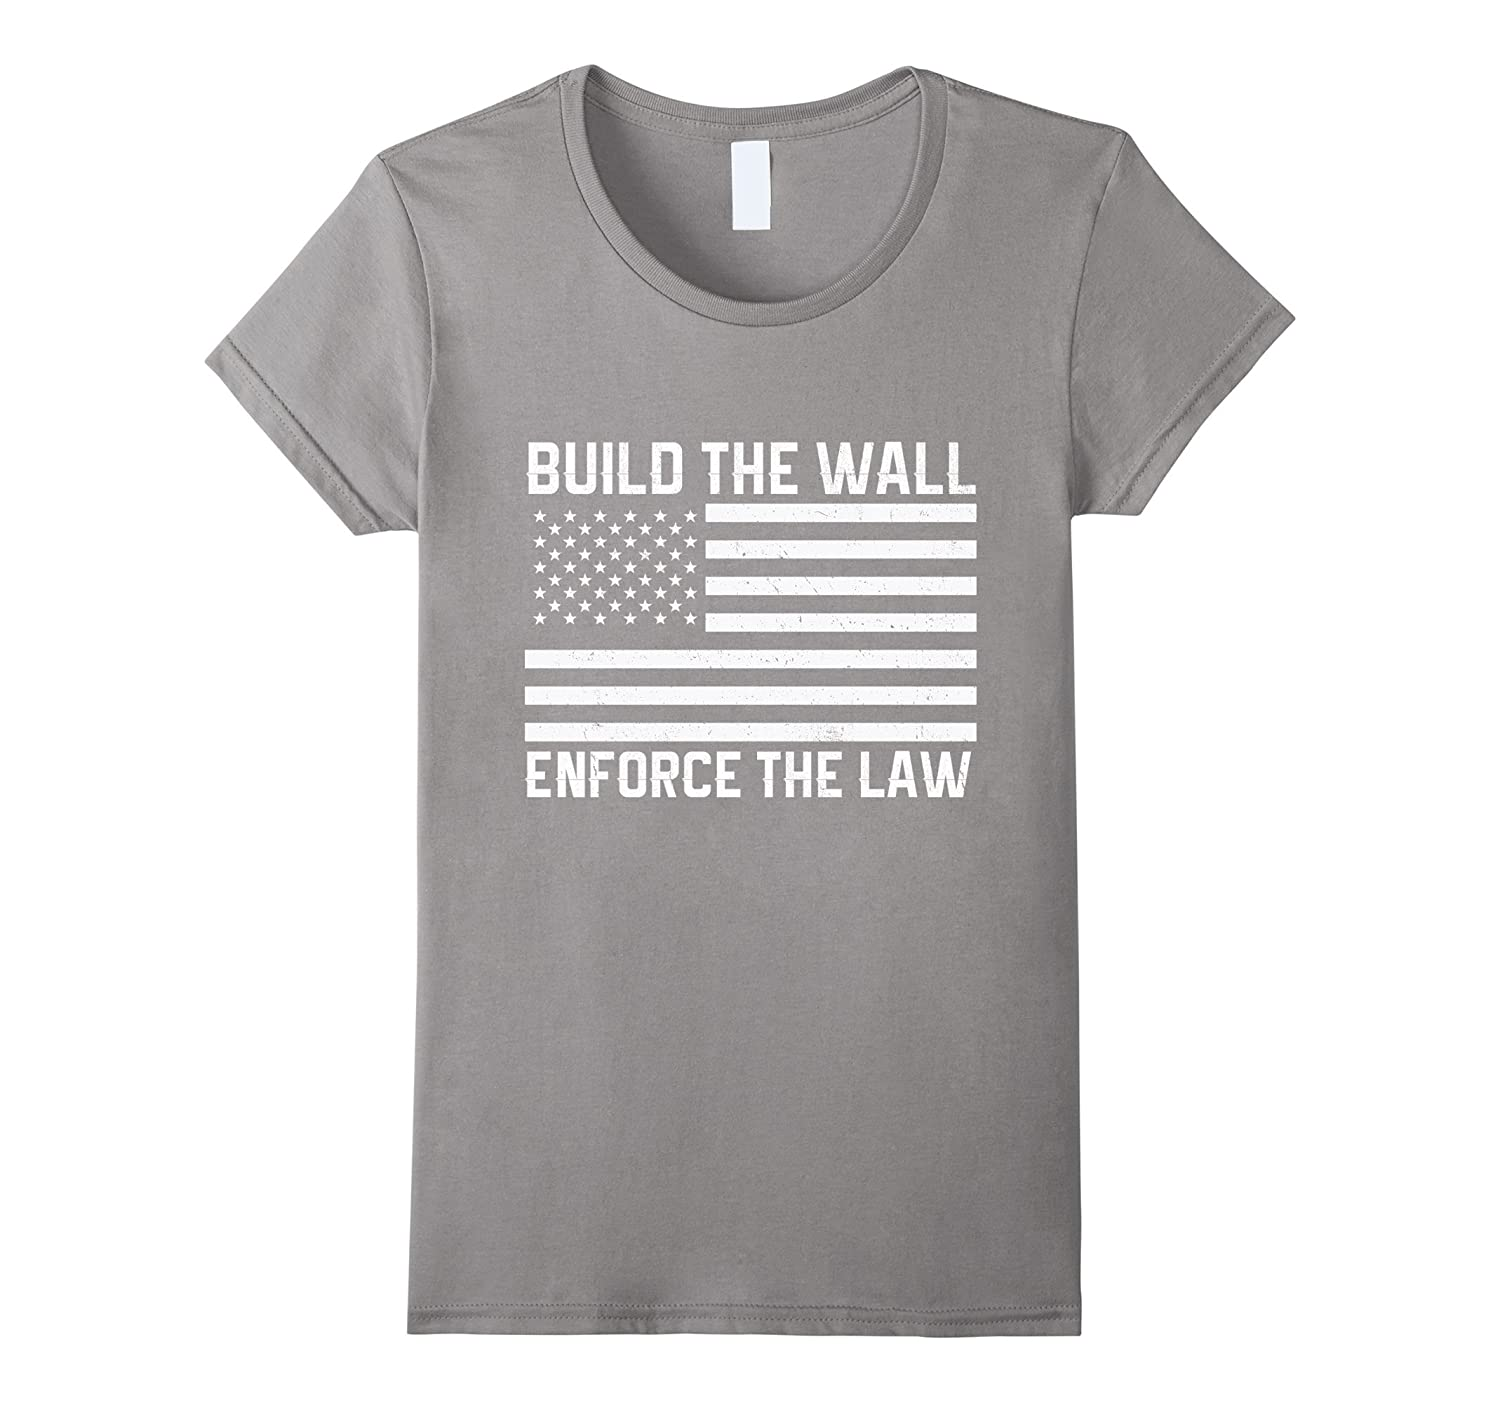 #BuildTheWall Enforce Law Trump Support Build The Wall Tee